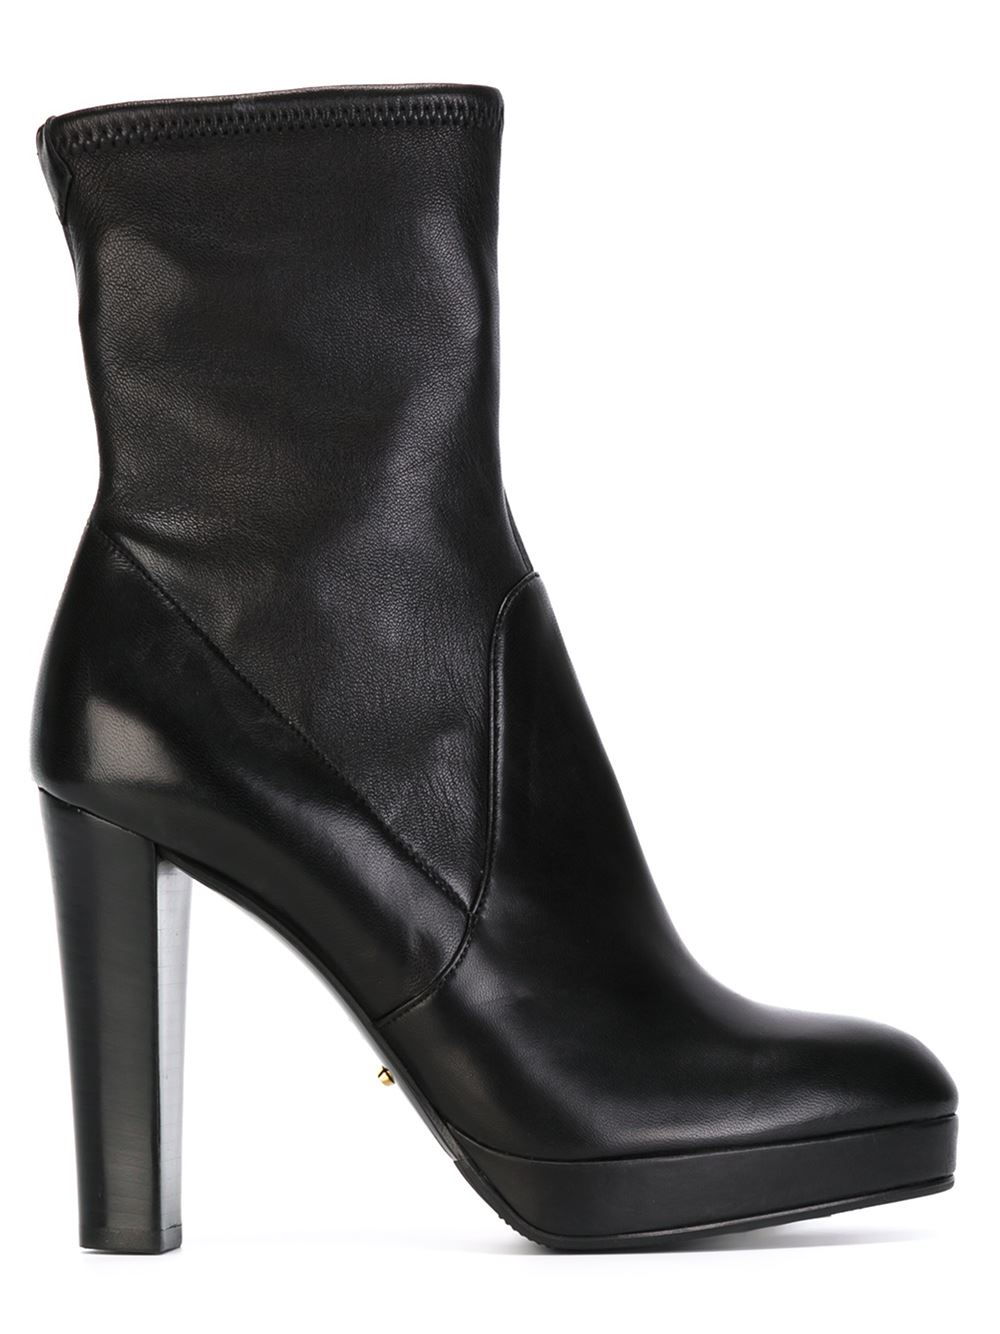 Find great deals on eBay for black boots heel. Shop with confidence.